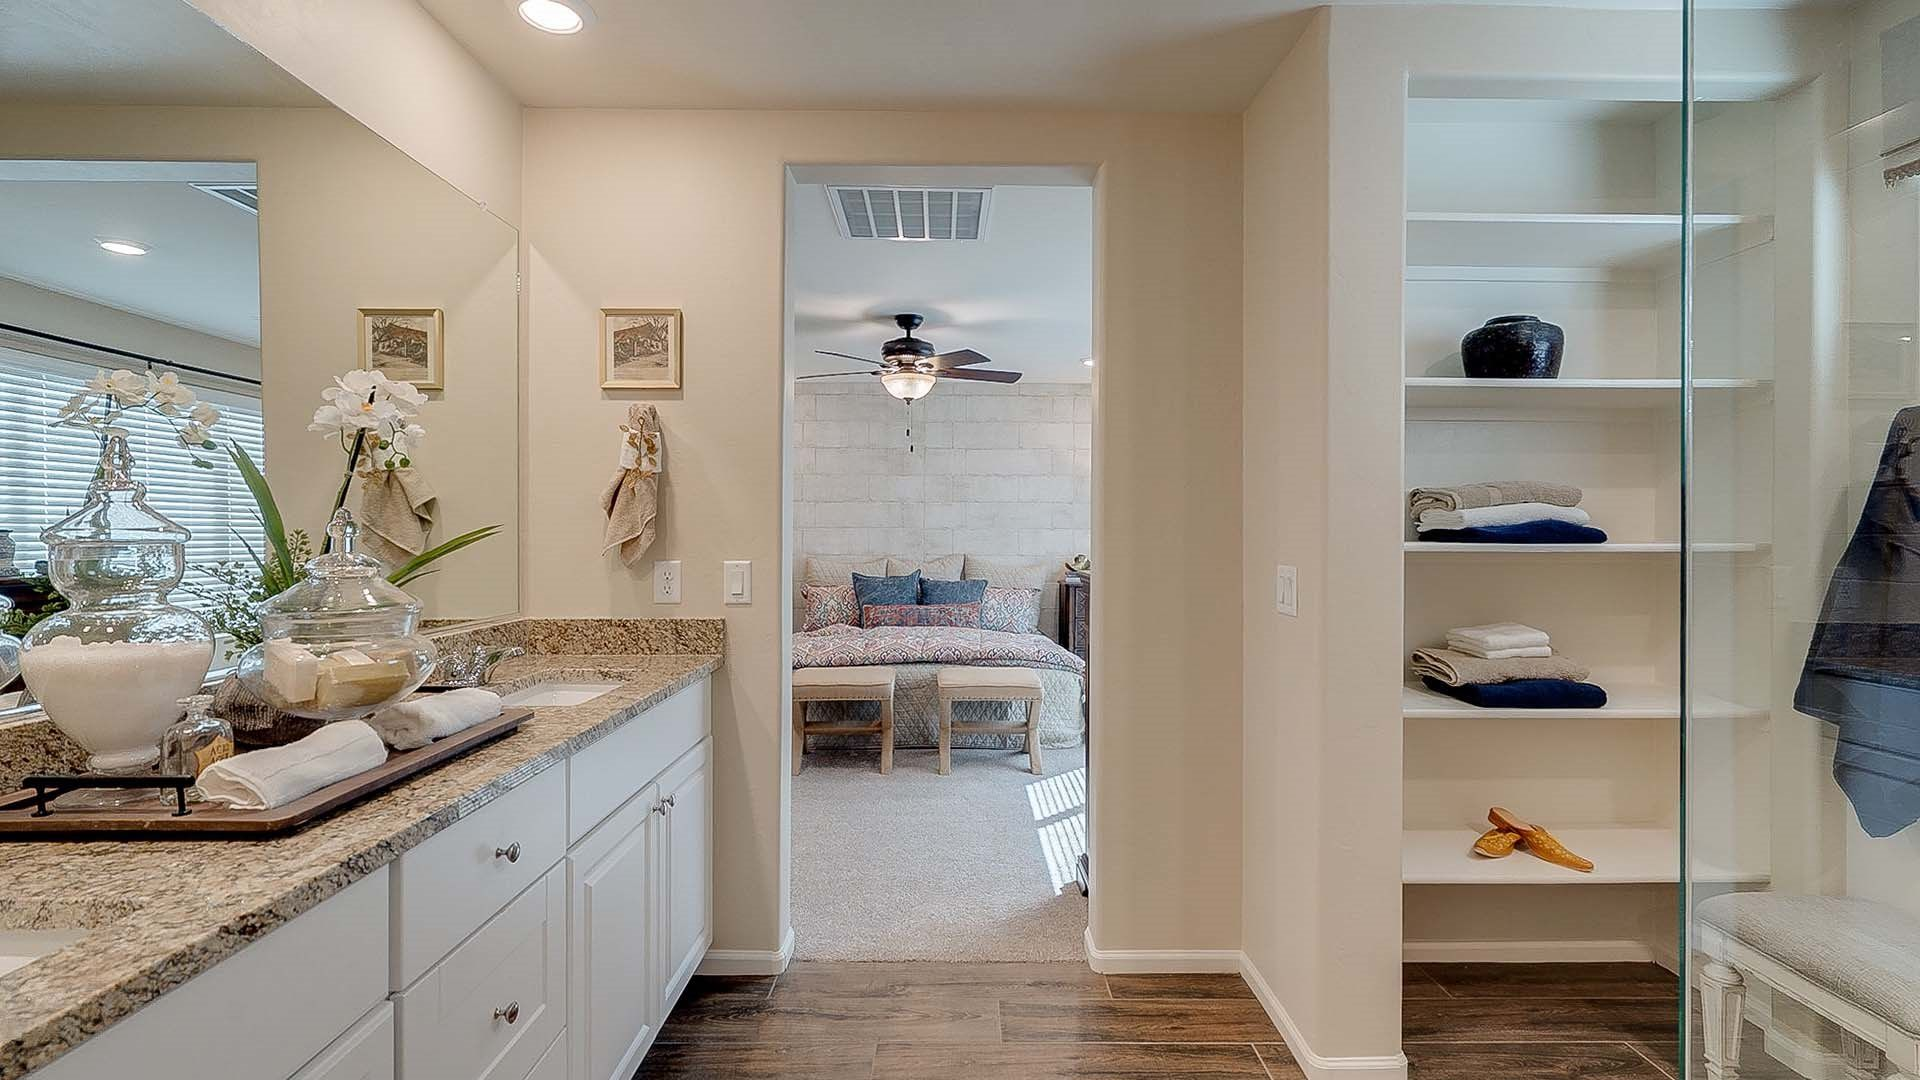 Bathroom featured in the Desert Willow By Lennar in Tucson, AZ